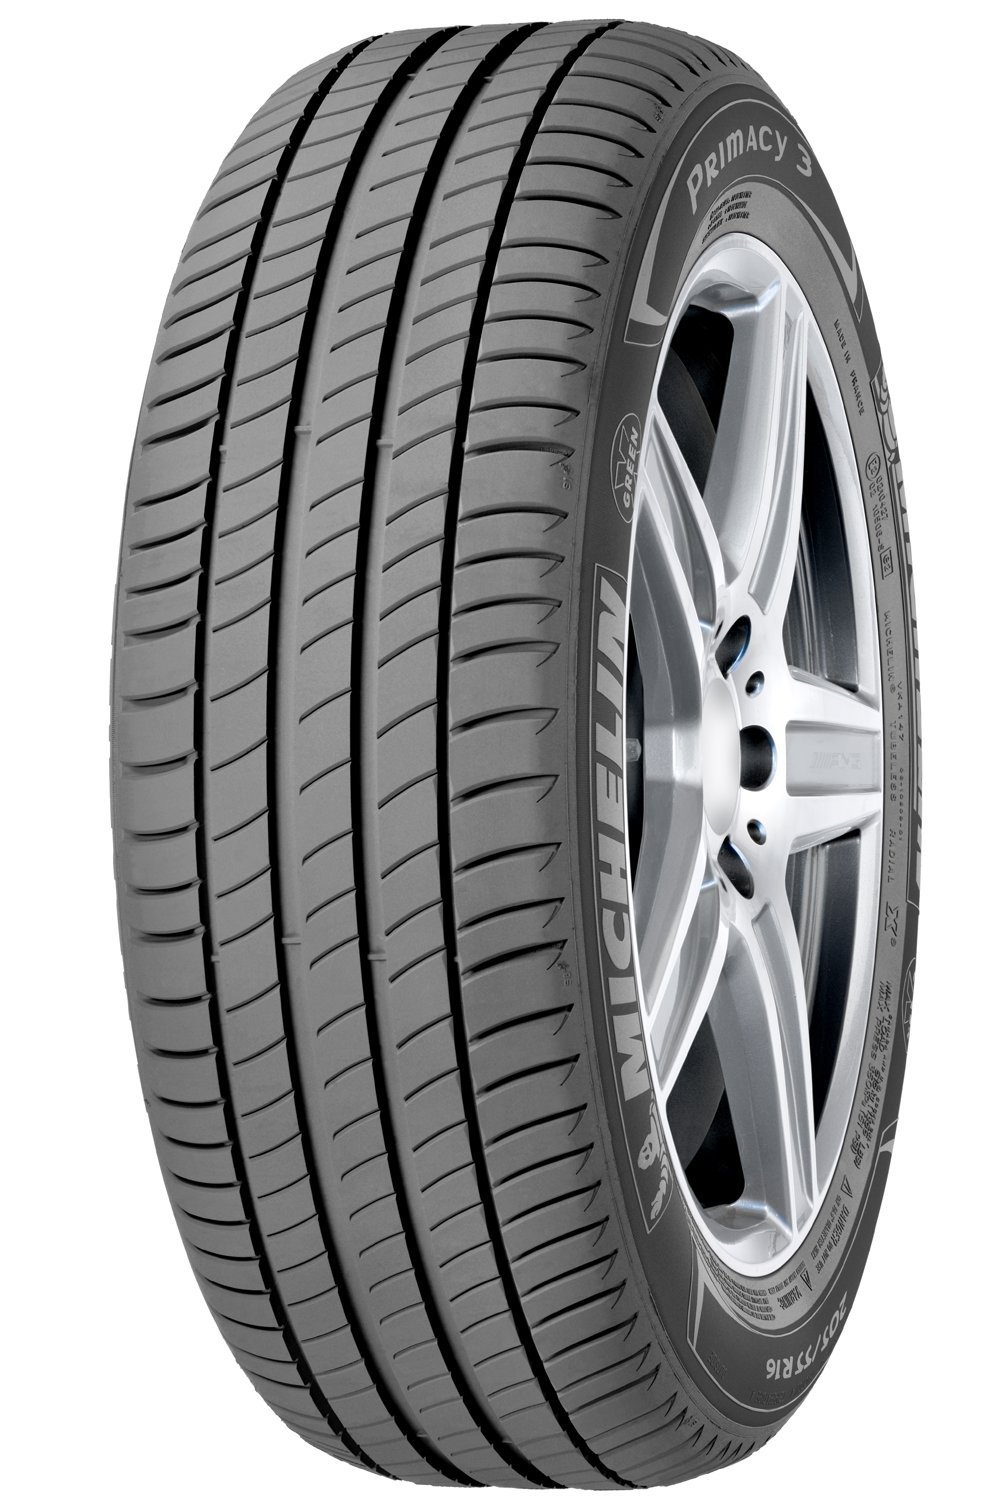 Michelin Primacy 3 245/50R18 100W